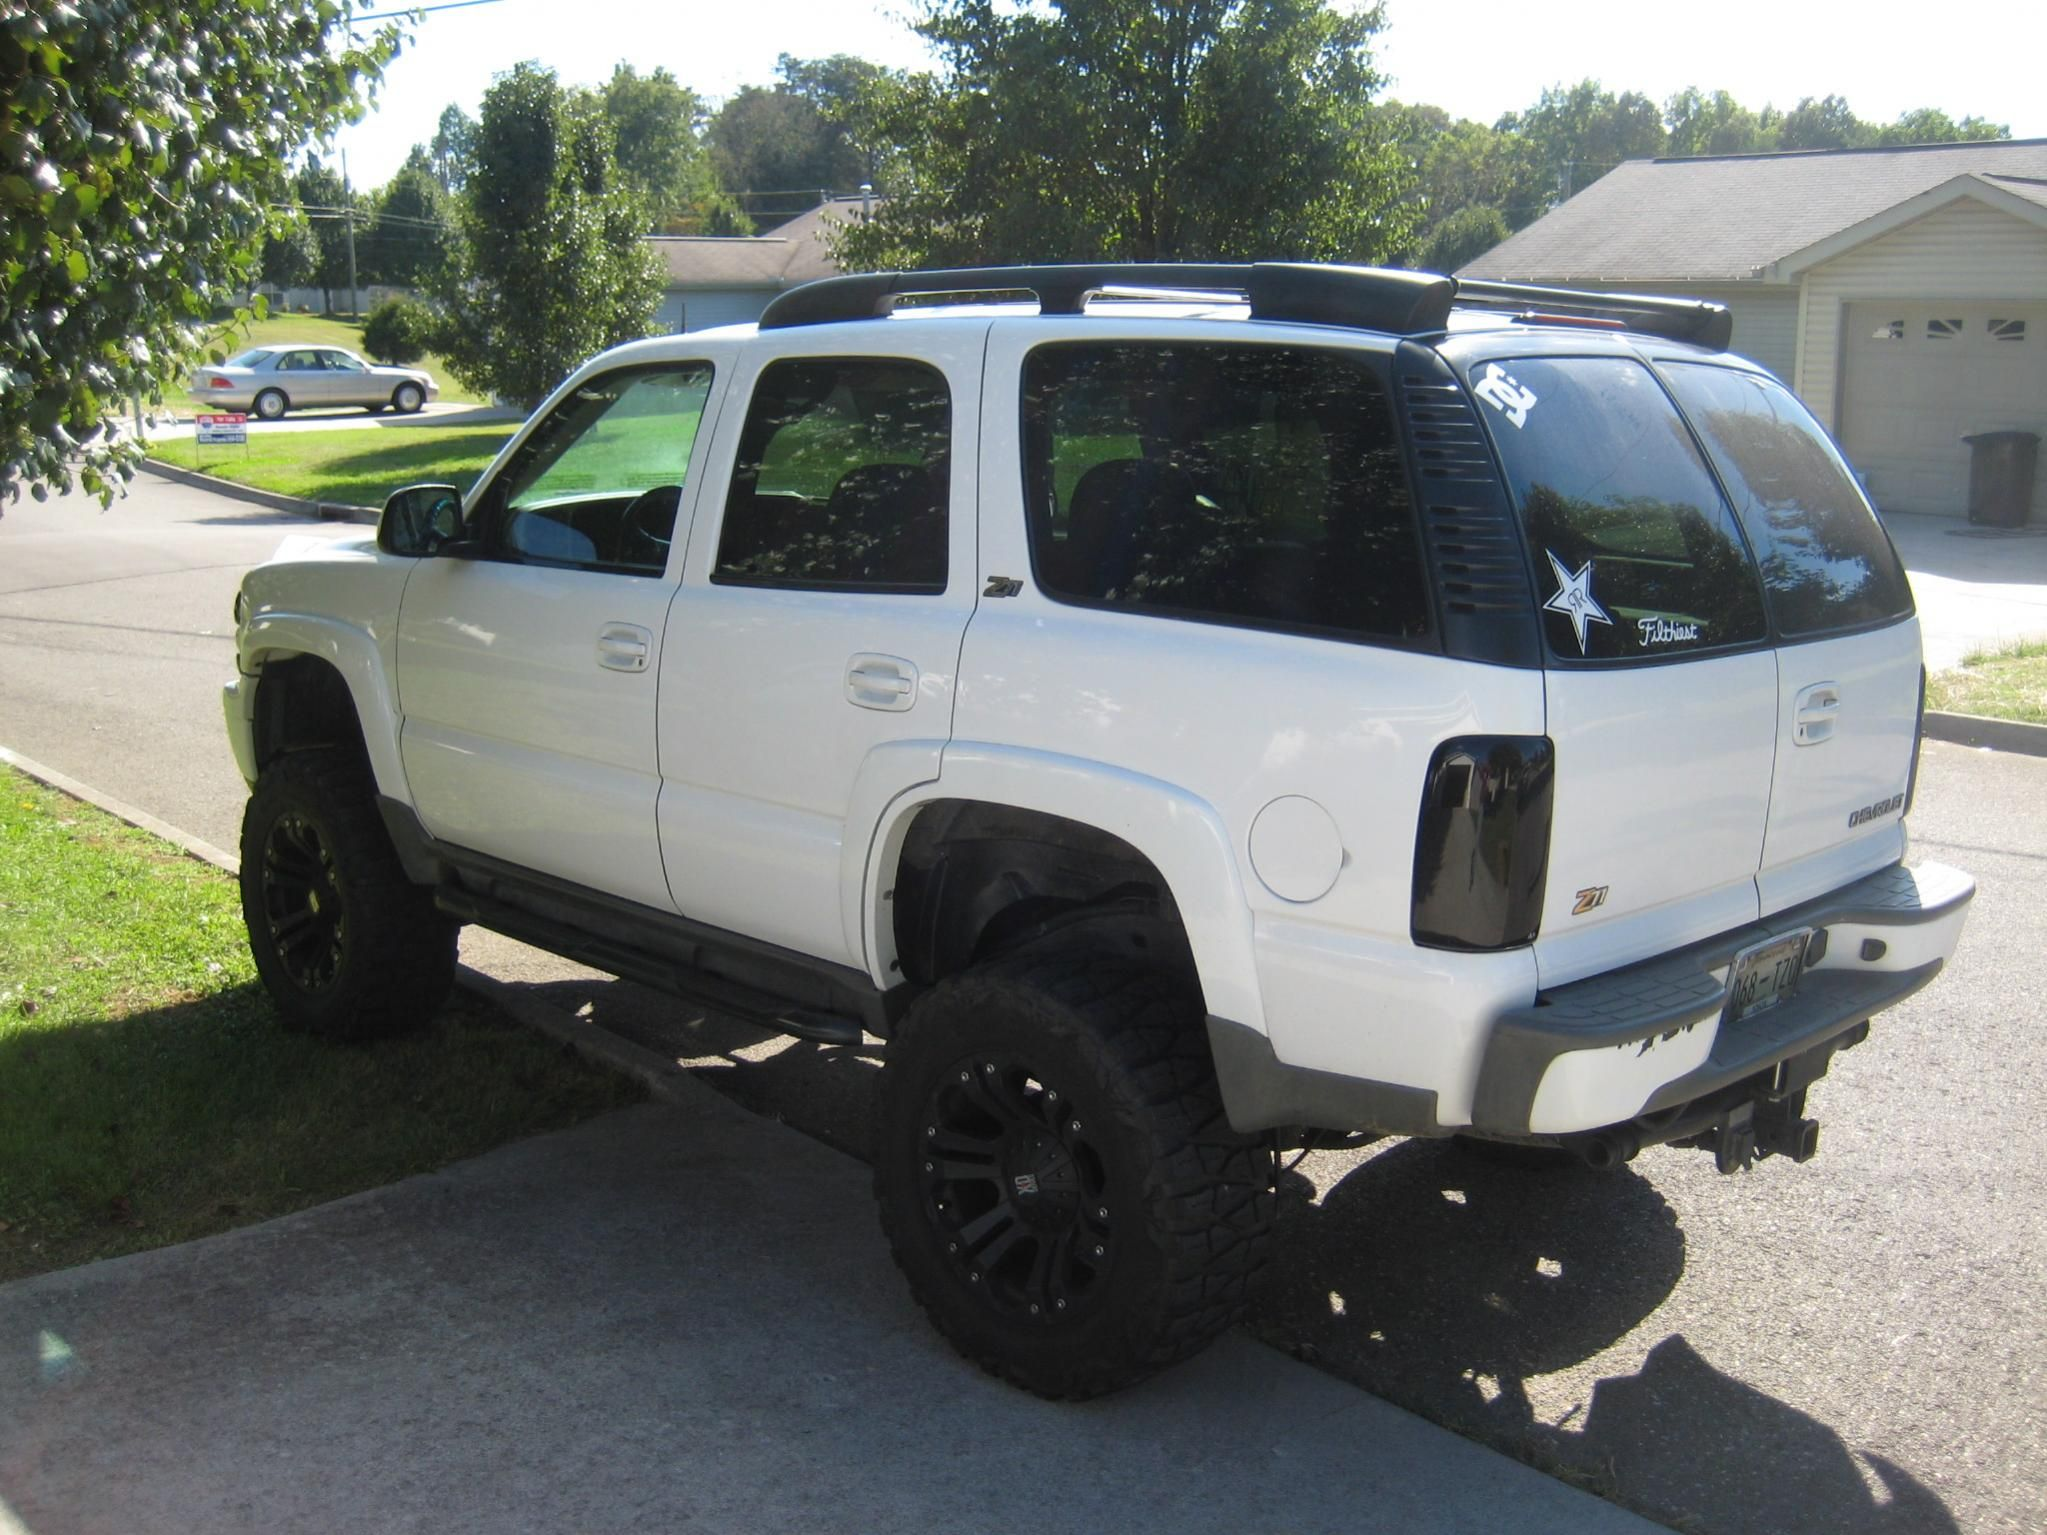 Wtt 2002 tahoe lifted camaro and firebird forum discussion